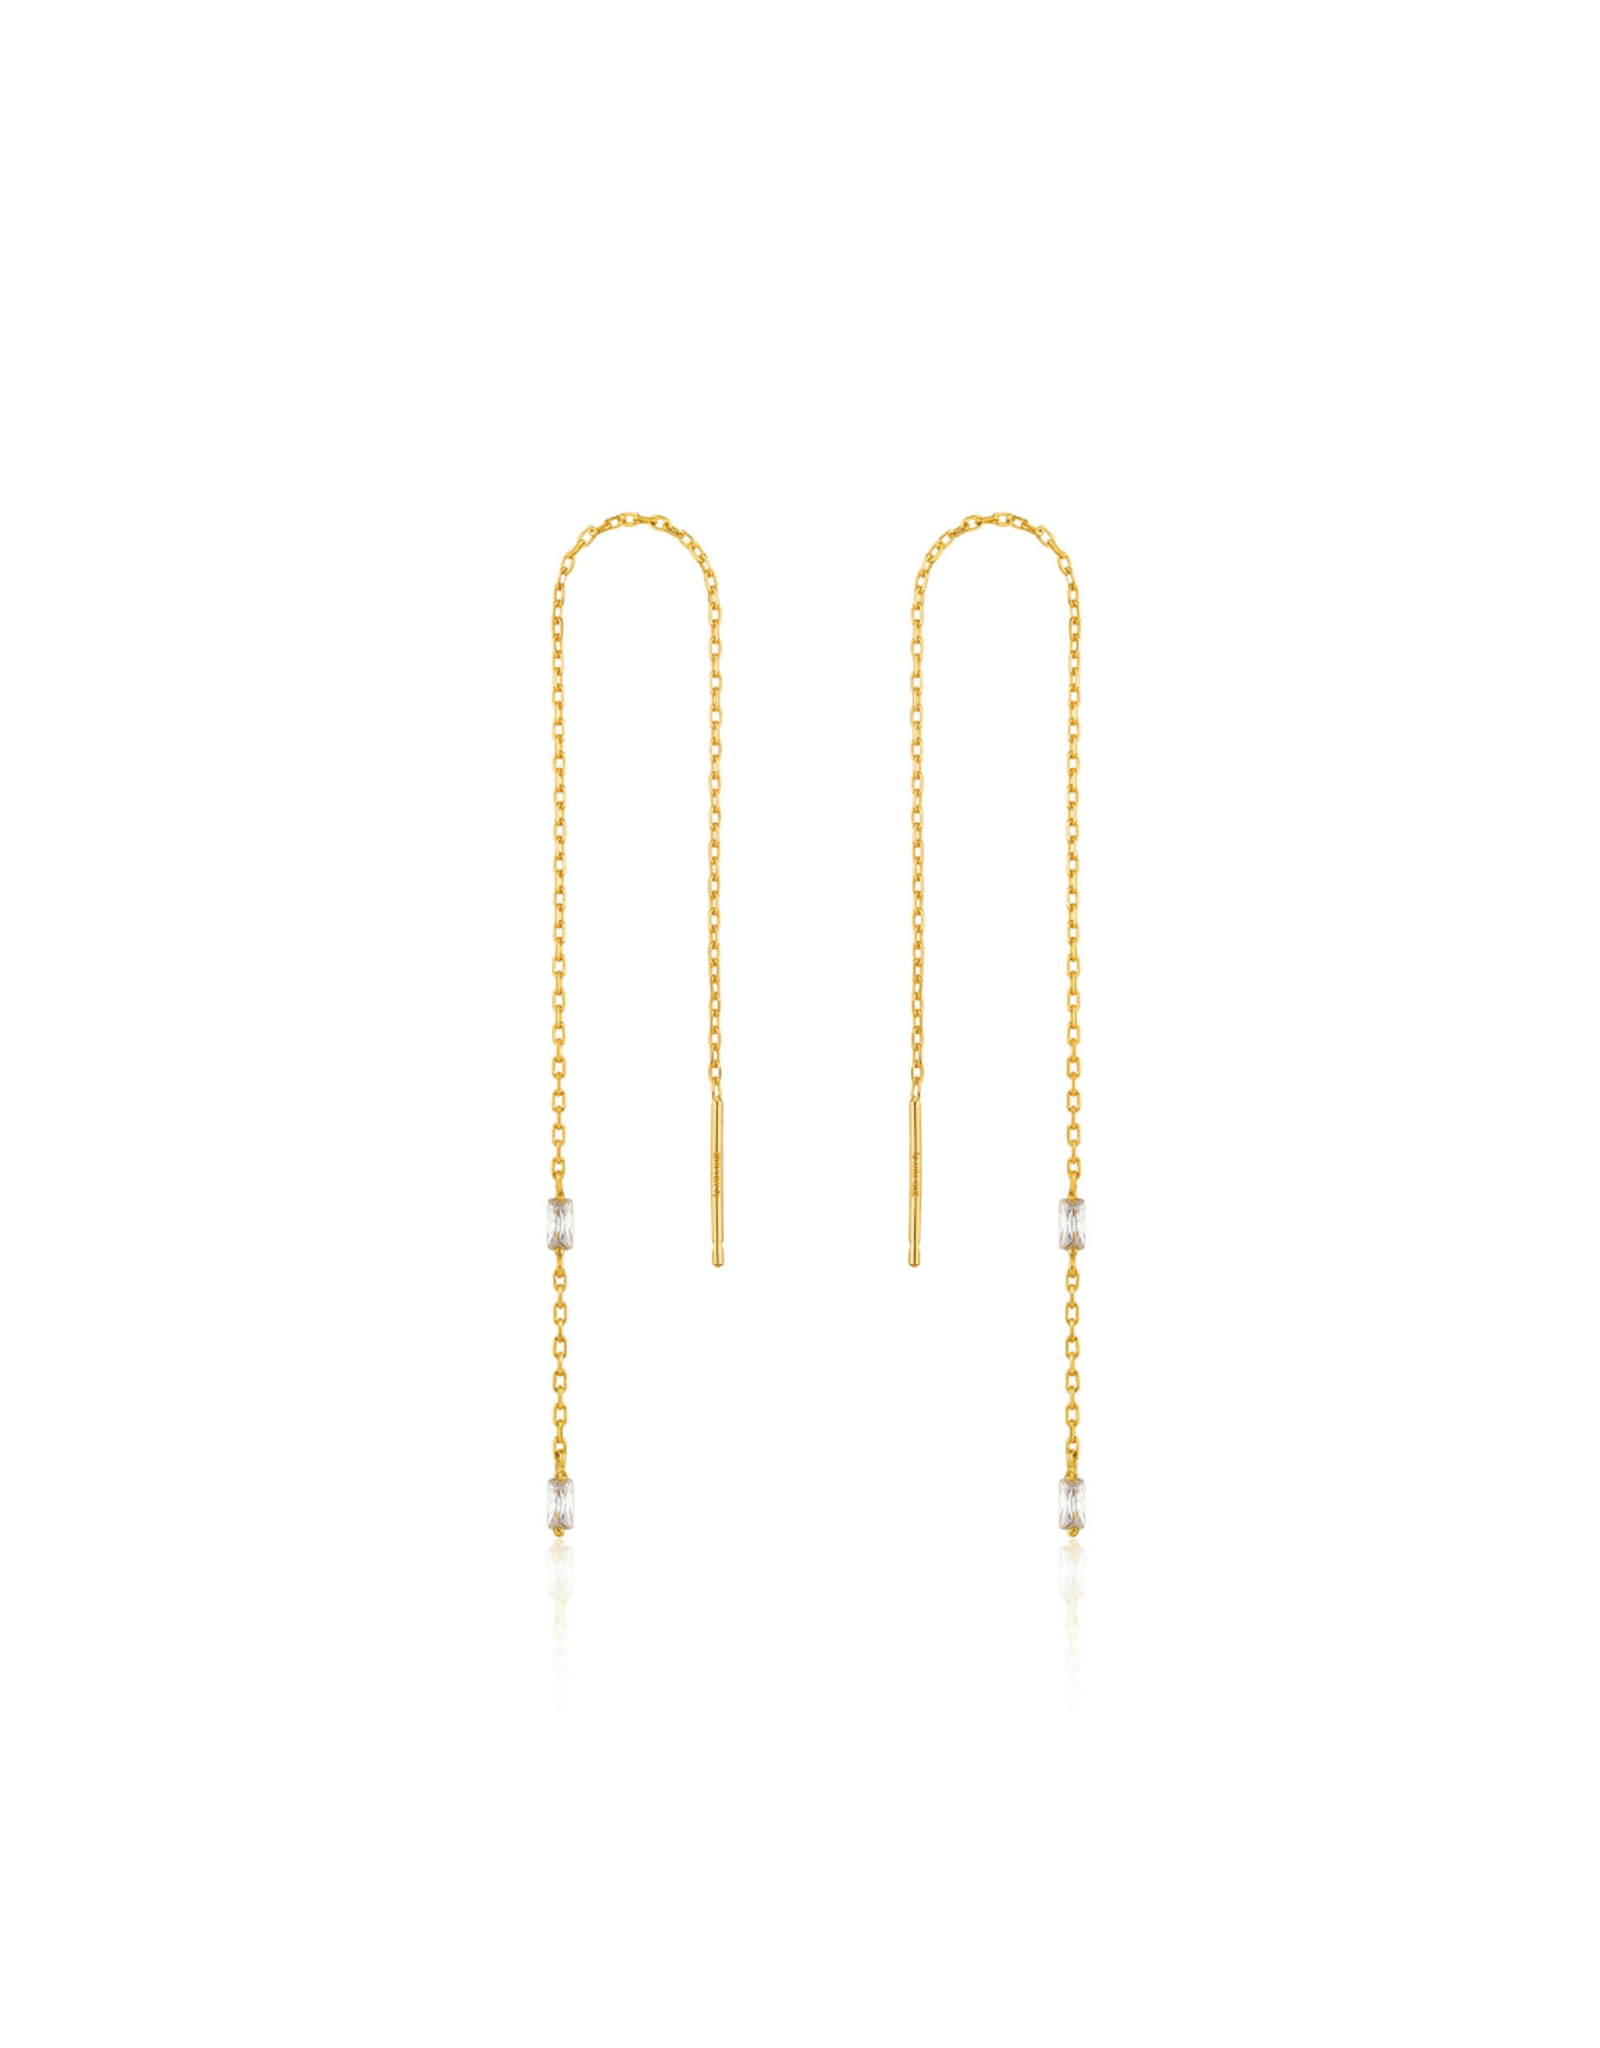 Ania Haie Glow Threader Earrings, gold